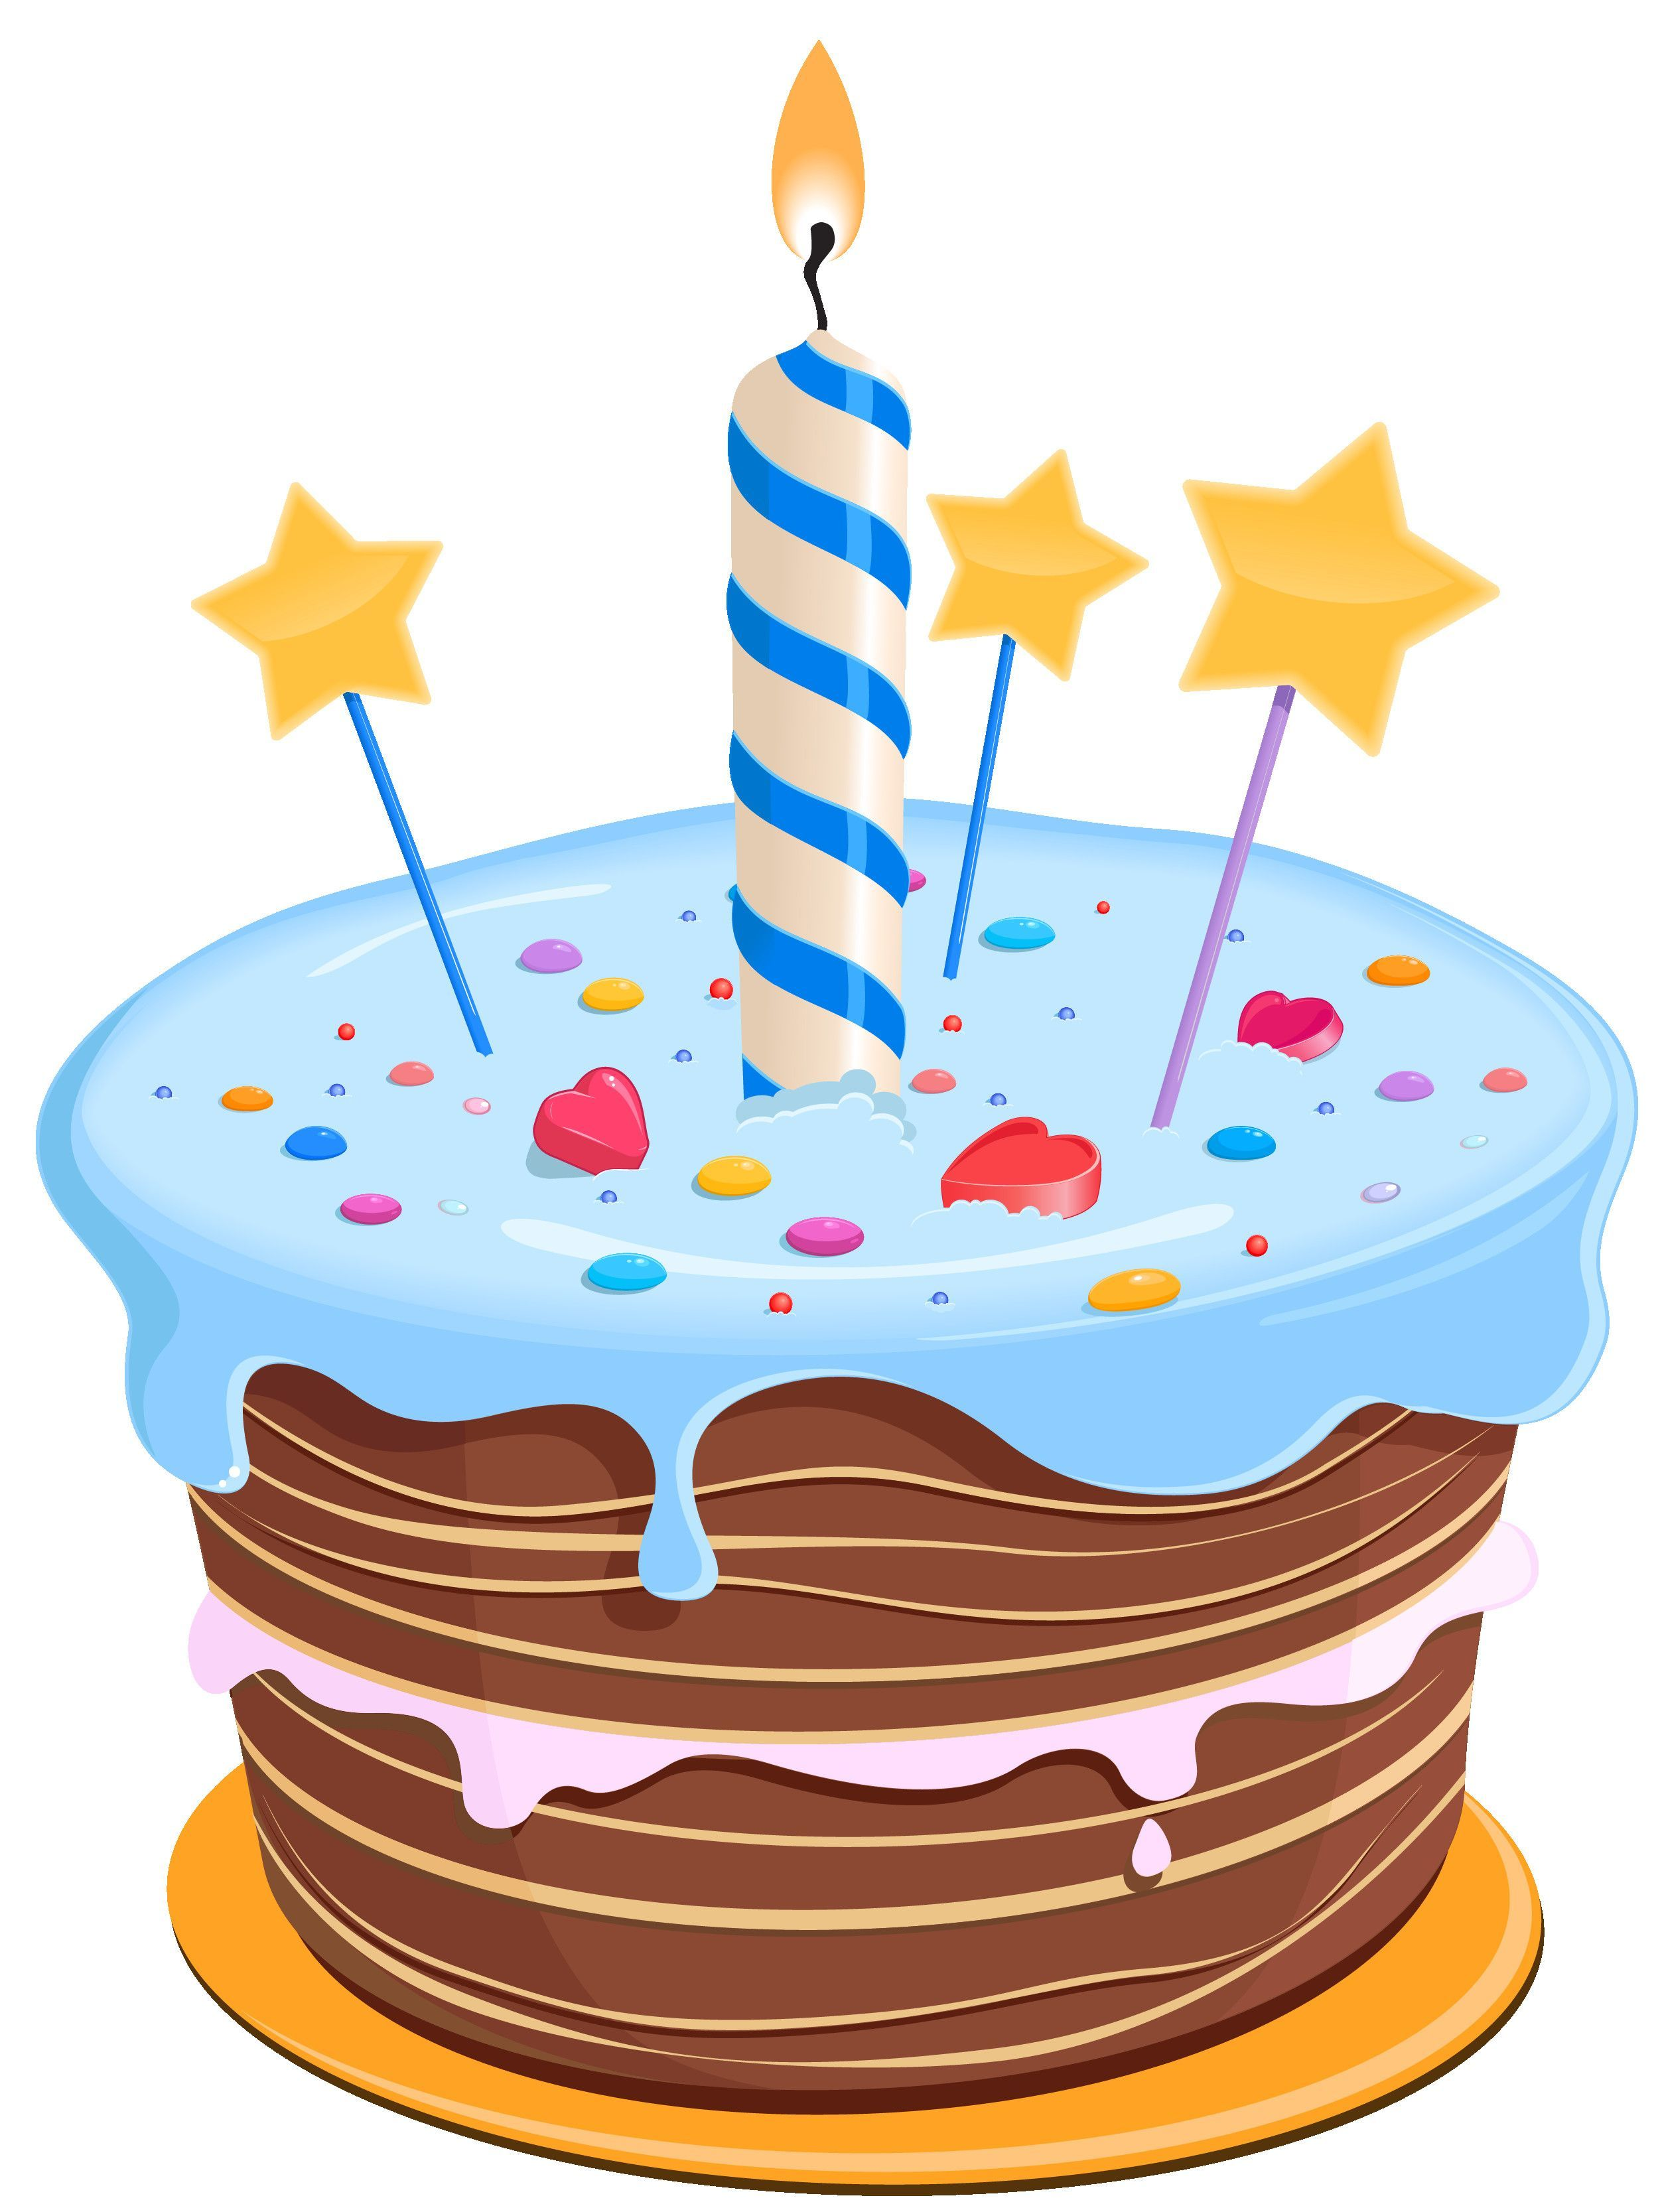 Birthday Cake Png Clipart 20 Ideas For Birthday Cake Png Birthday Cake Png Clipart 2 Cartoon Birthday Cake Birthday Cake Illustration Birthday Cake Pictures